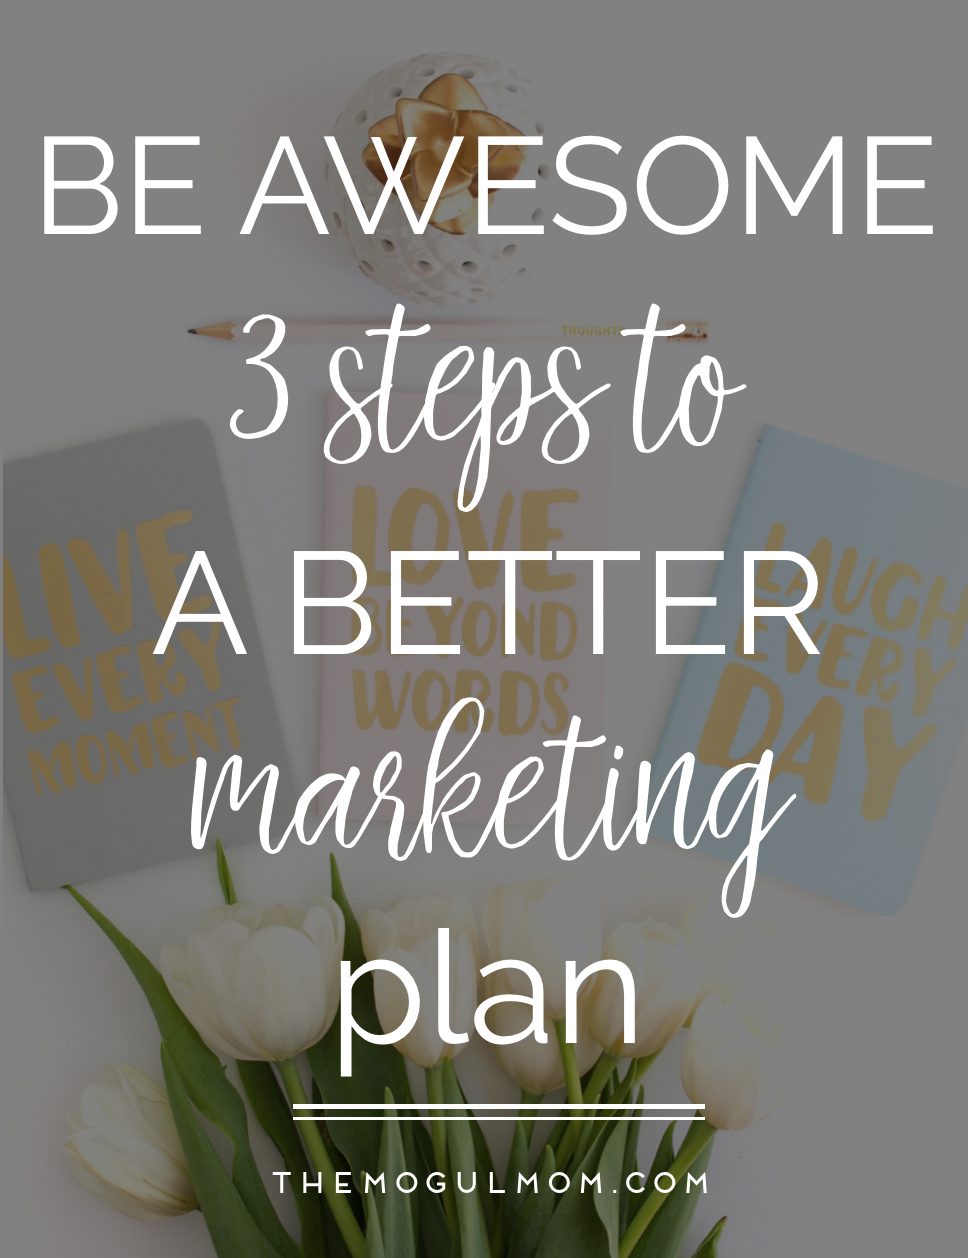 Be Awesome: 3 Steps to a Better Marketing Plan